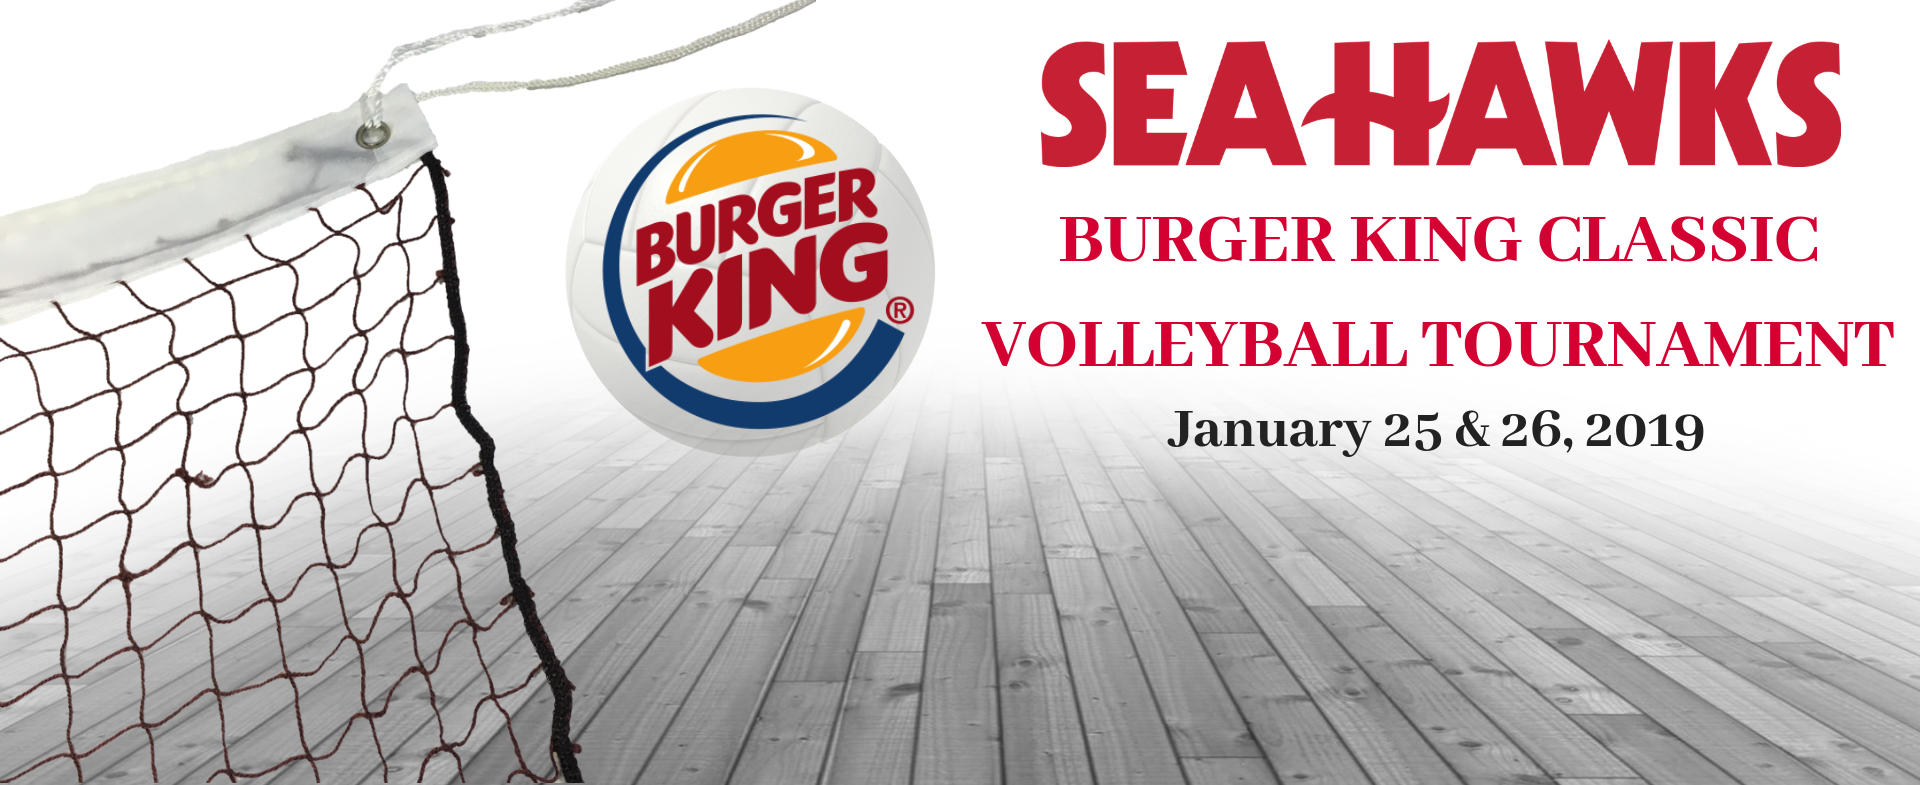 Burger King Classic Volleyball Tournament